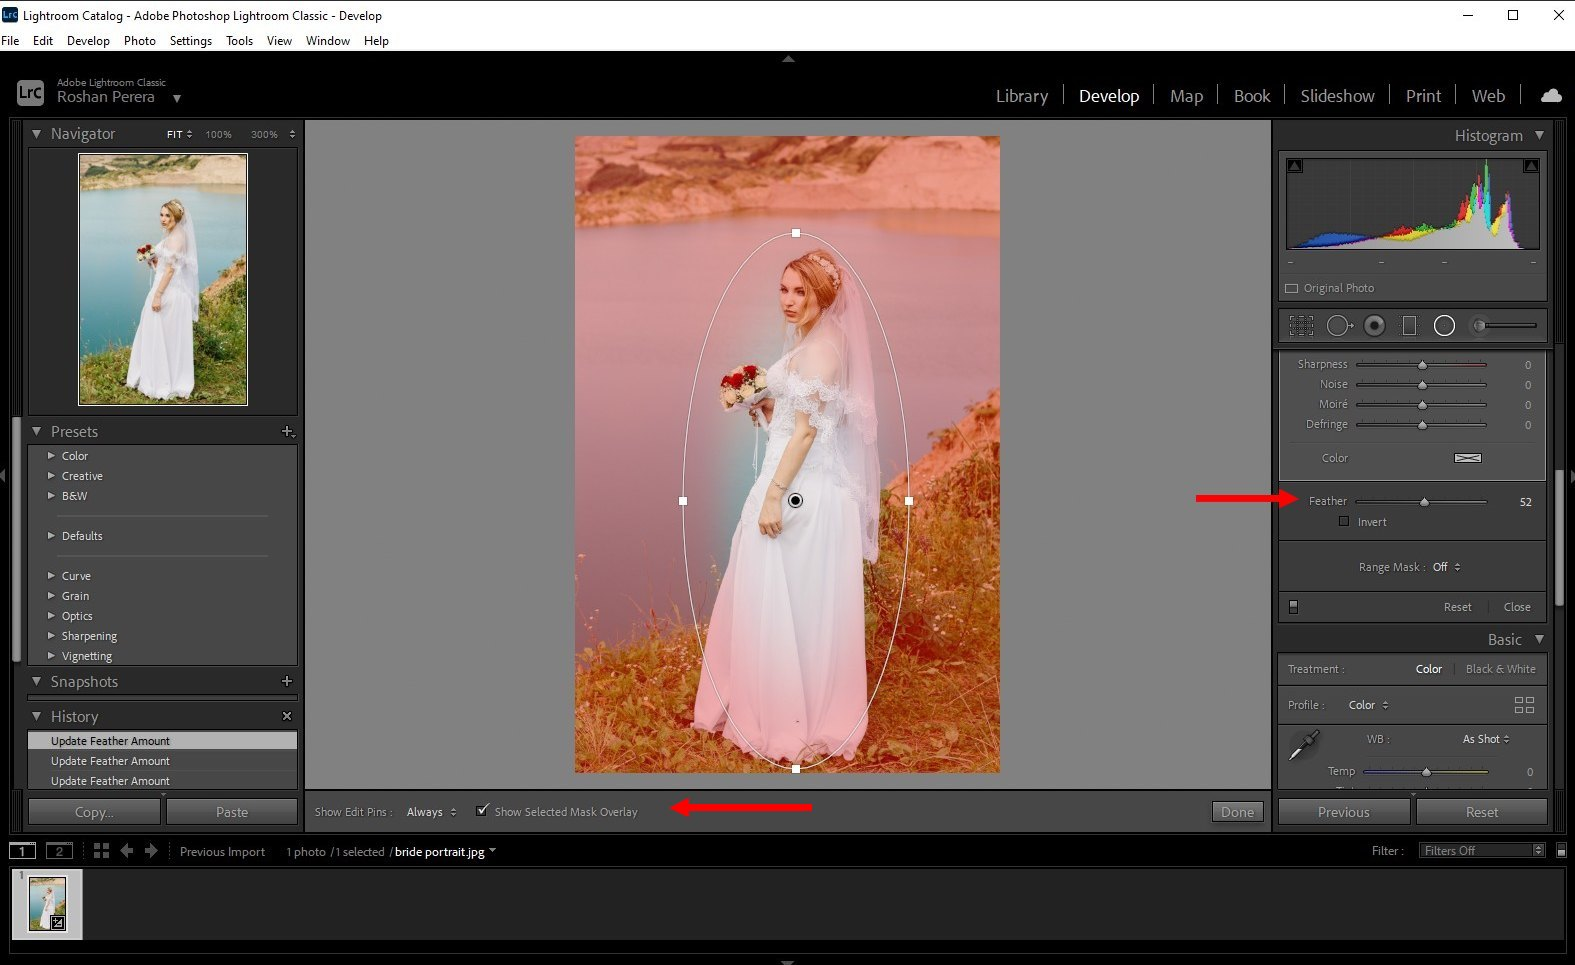 how to blur background lightroom classic - 2